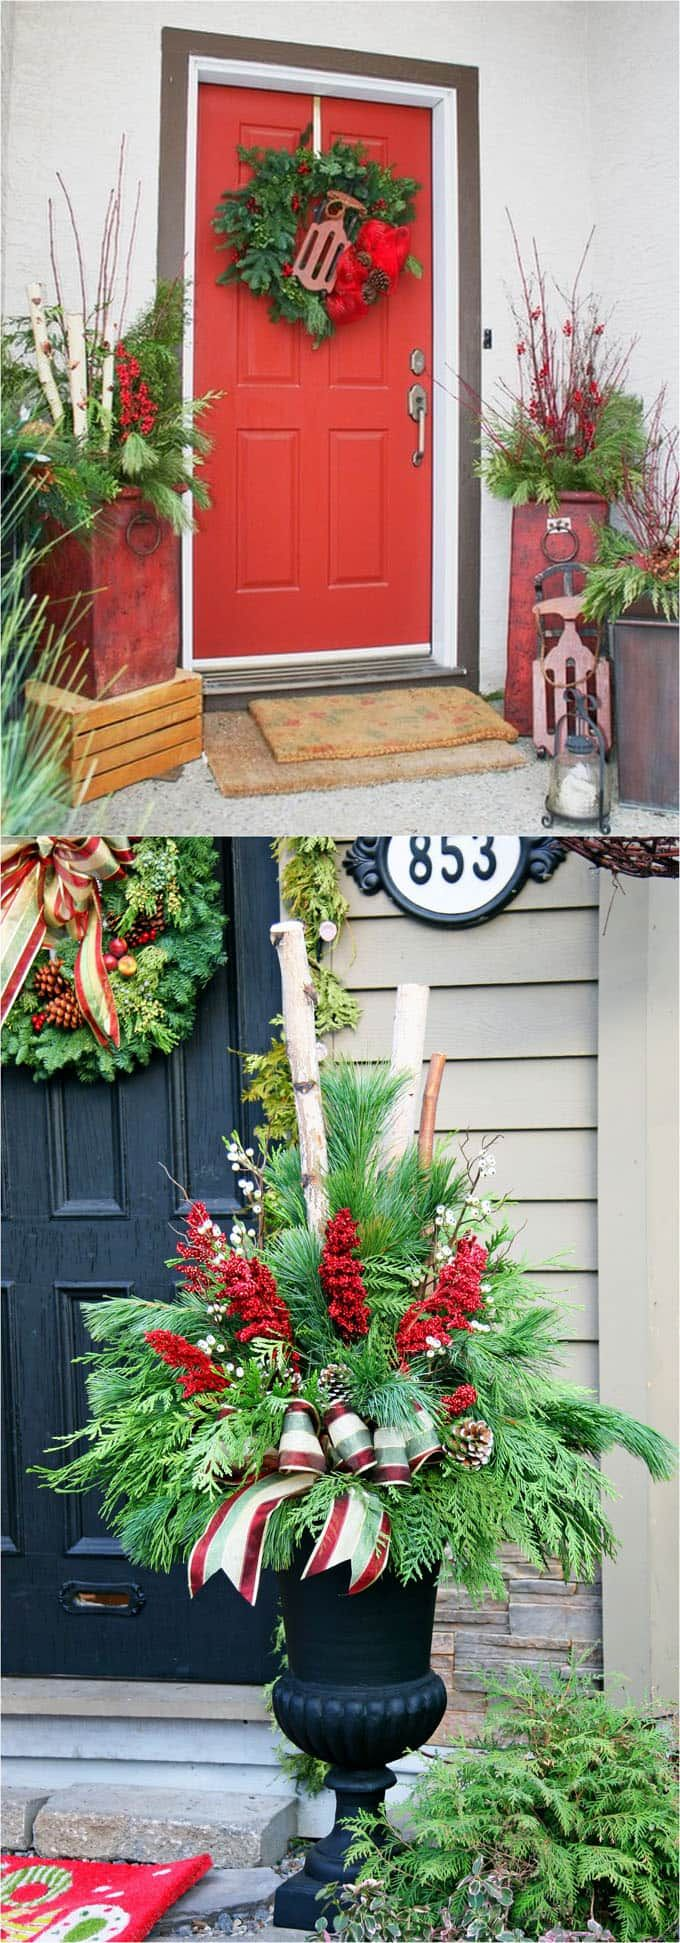 520 best Welcome! images on Pinterest | Crowns, Door wreaths and ...